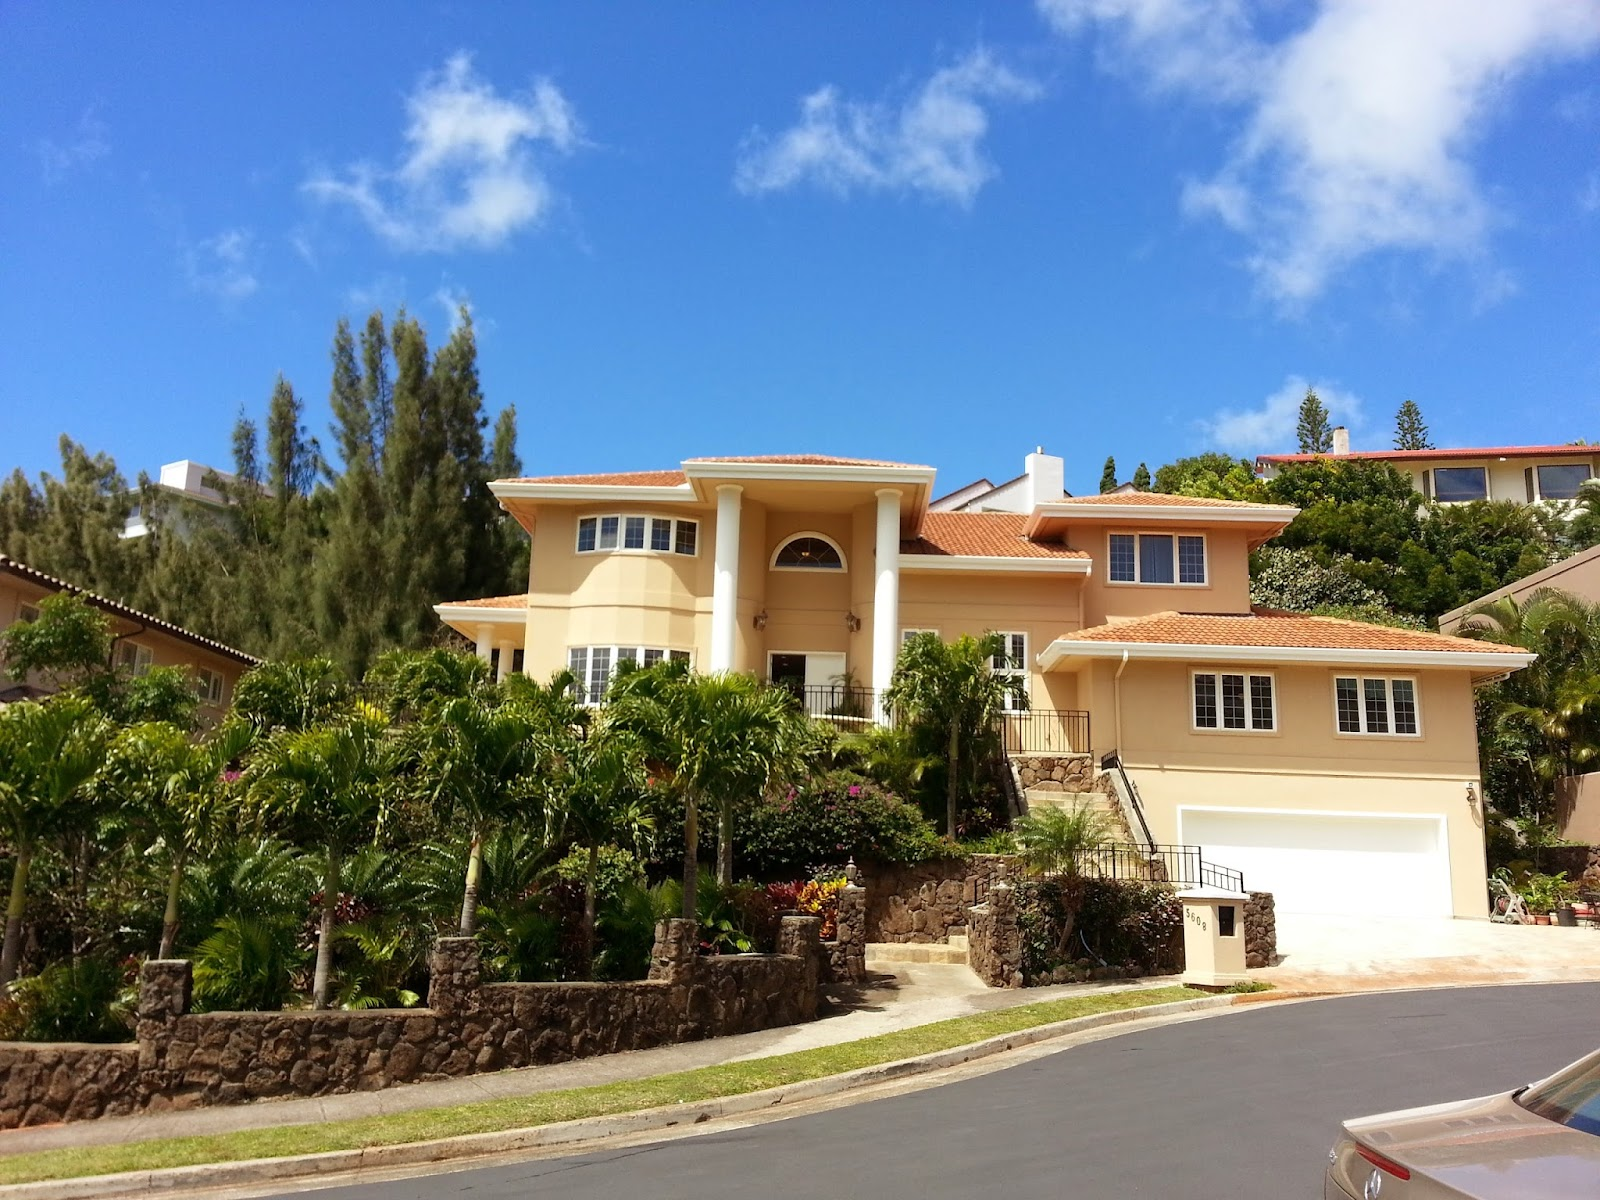 I toured this new house today at Kahala Kua.  Very nice kept in good condition.   With limited view of ocean within the house but as you drive down hill, you will love the tranquility and the ocean view right in front of you.